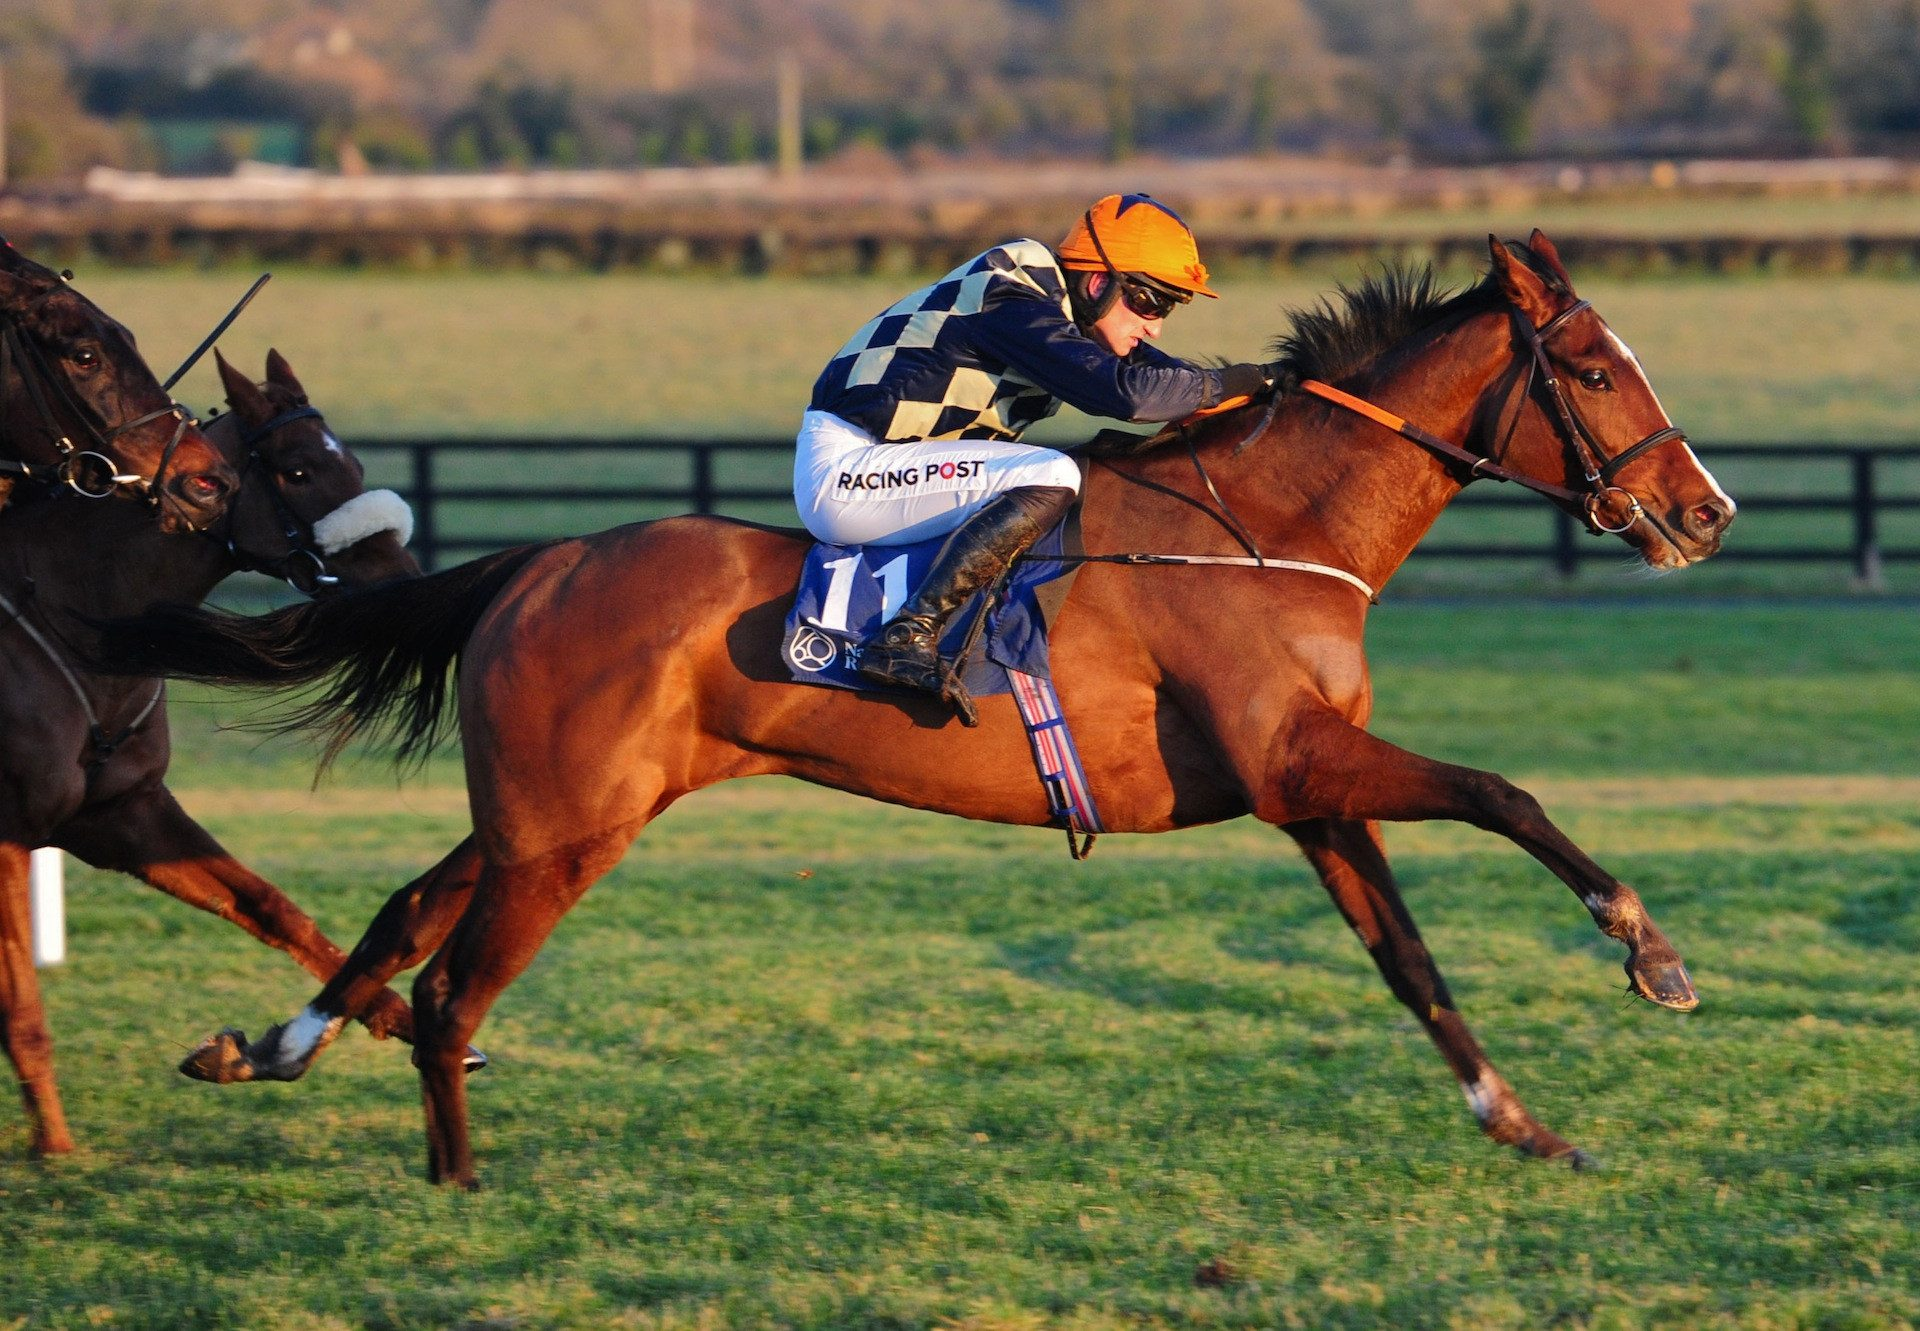 Lady Temperance (Getaway) wins the bumper at Naas